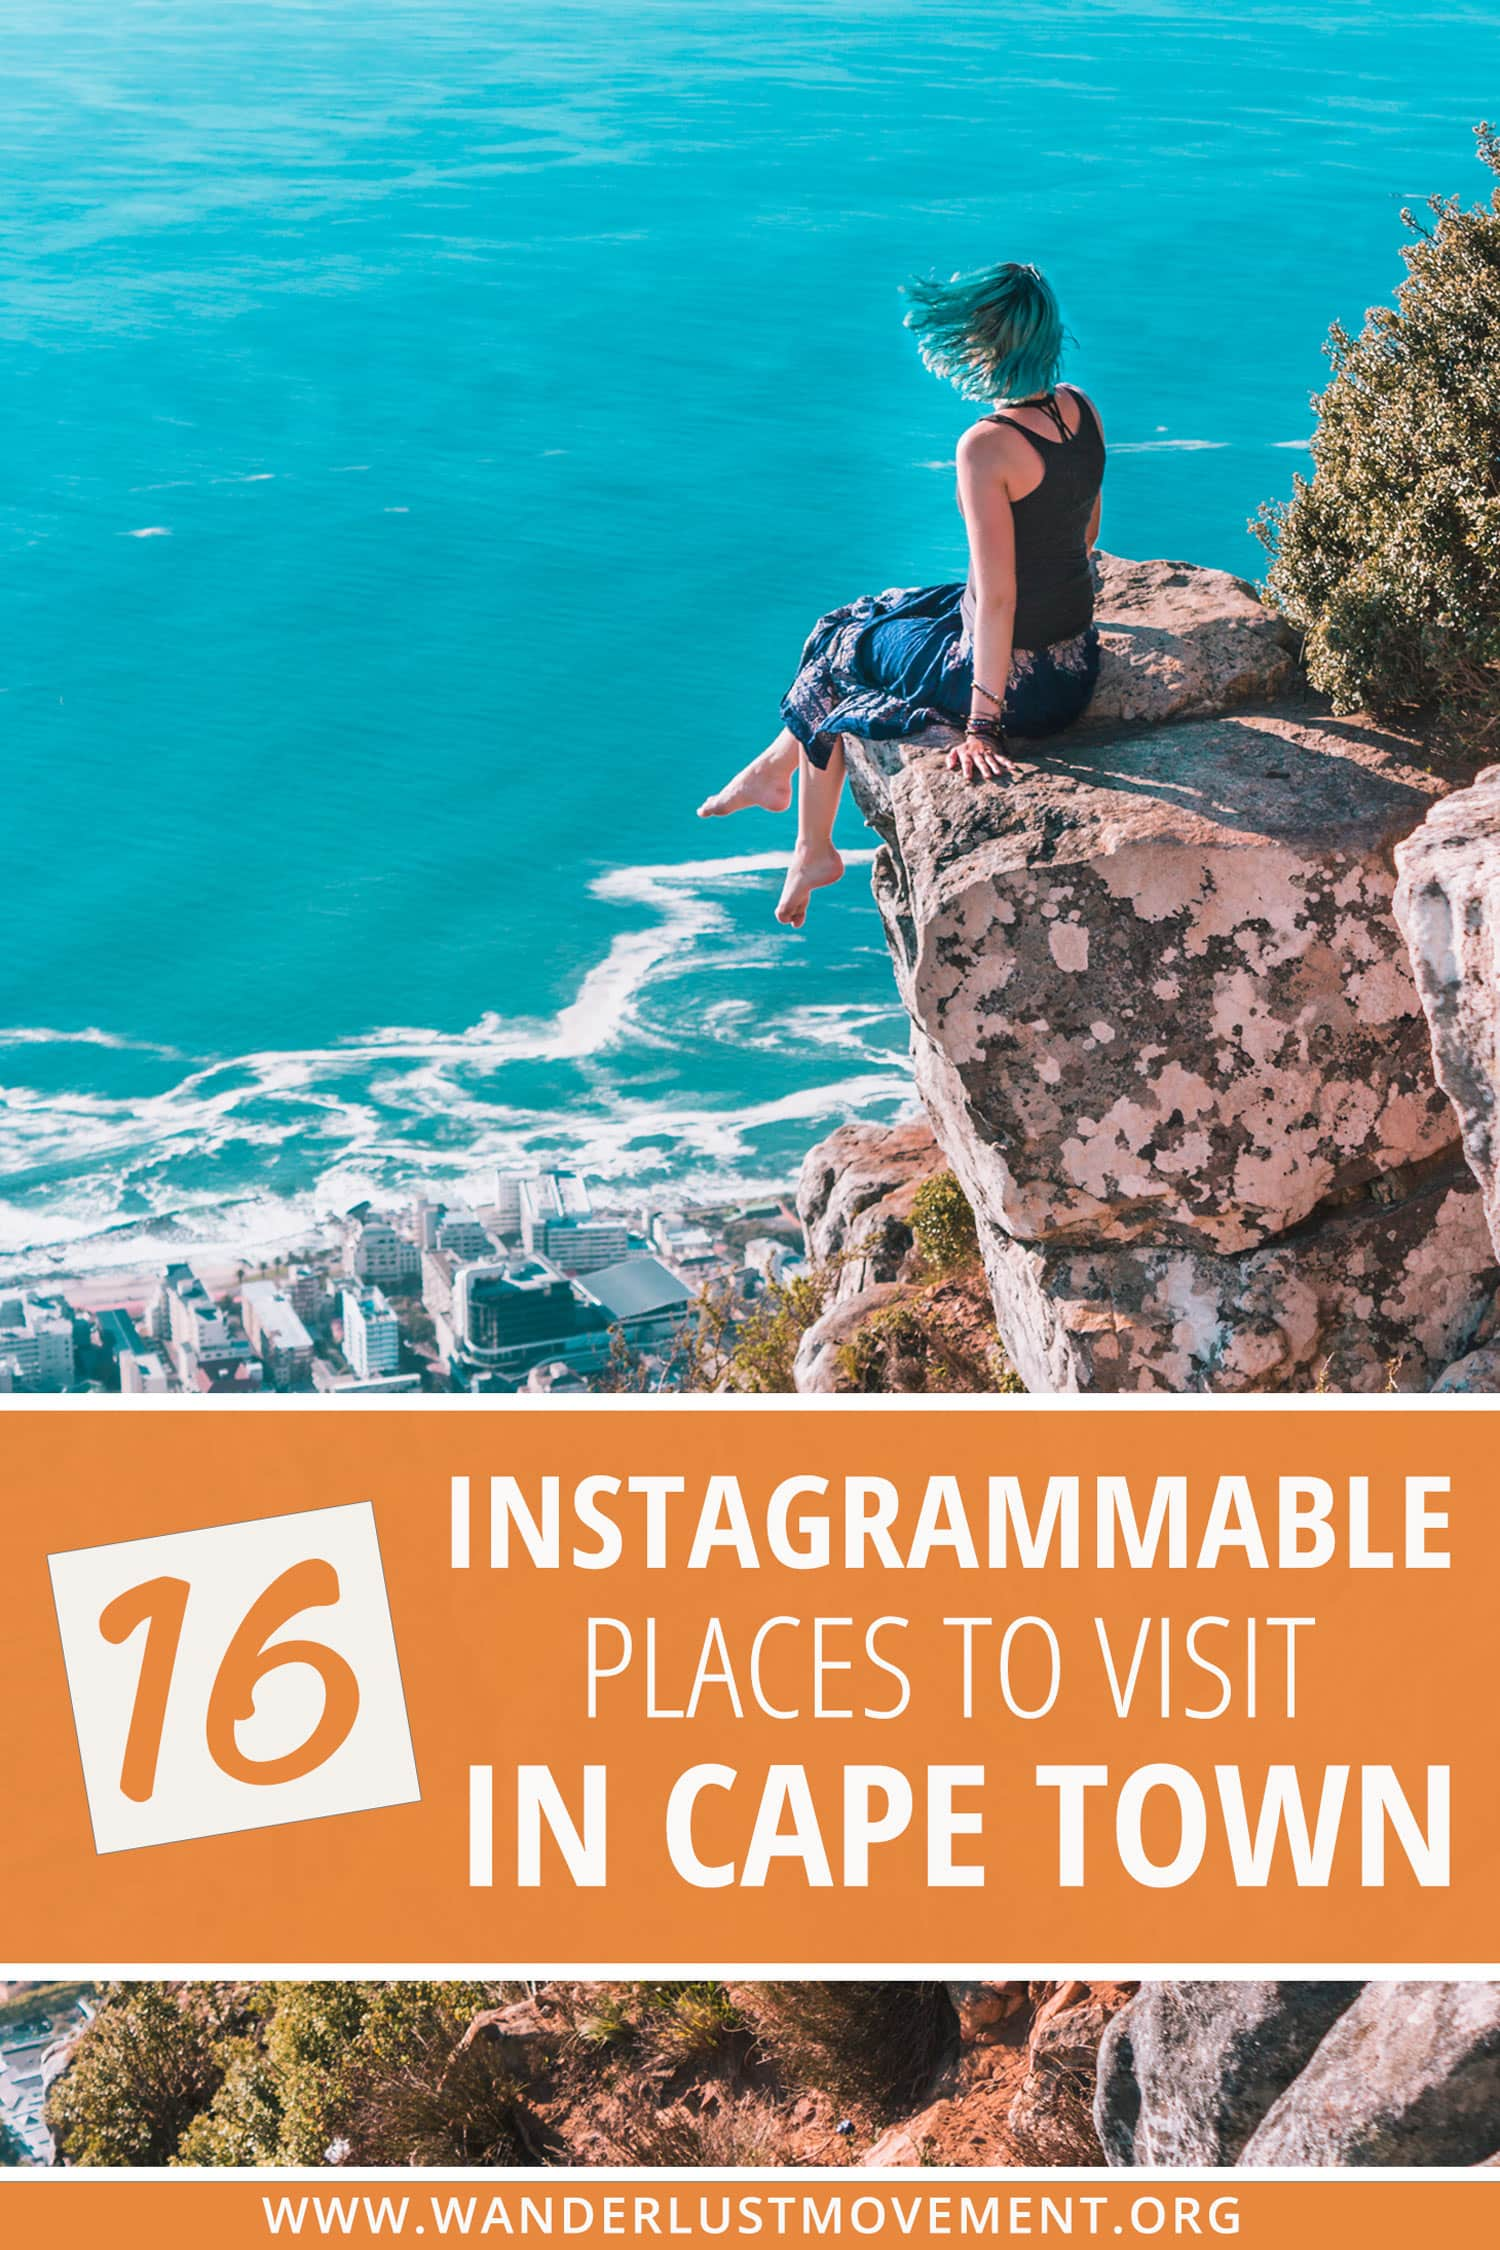 Looking for the most Instagrammable places in Cape Town? This ultimate guide to Cape Town\'s most beautiful destinations has you covered! Spend a beach day with penguins, watch the sunset from on top of Table Mountain, hike Lions Head, explore a shipwreck and take a photo at the infamous Surfboard Rock! Here are some of the best things to do in Cape Town to add to your Instagram itinerary! #capetown #southafrica #traveltips #instagram #travelguide #travel